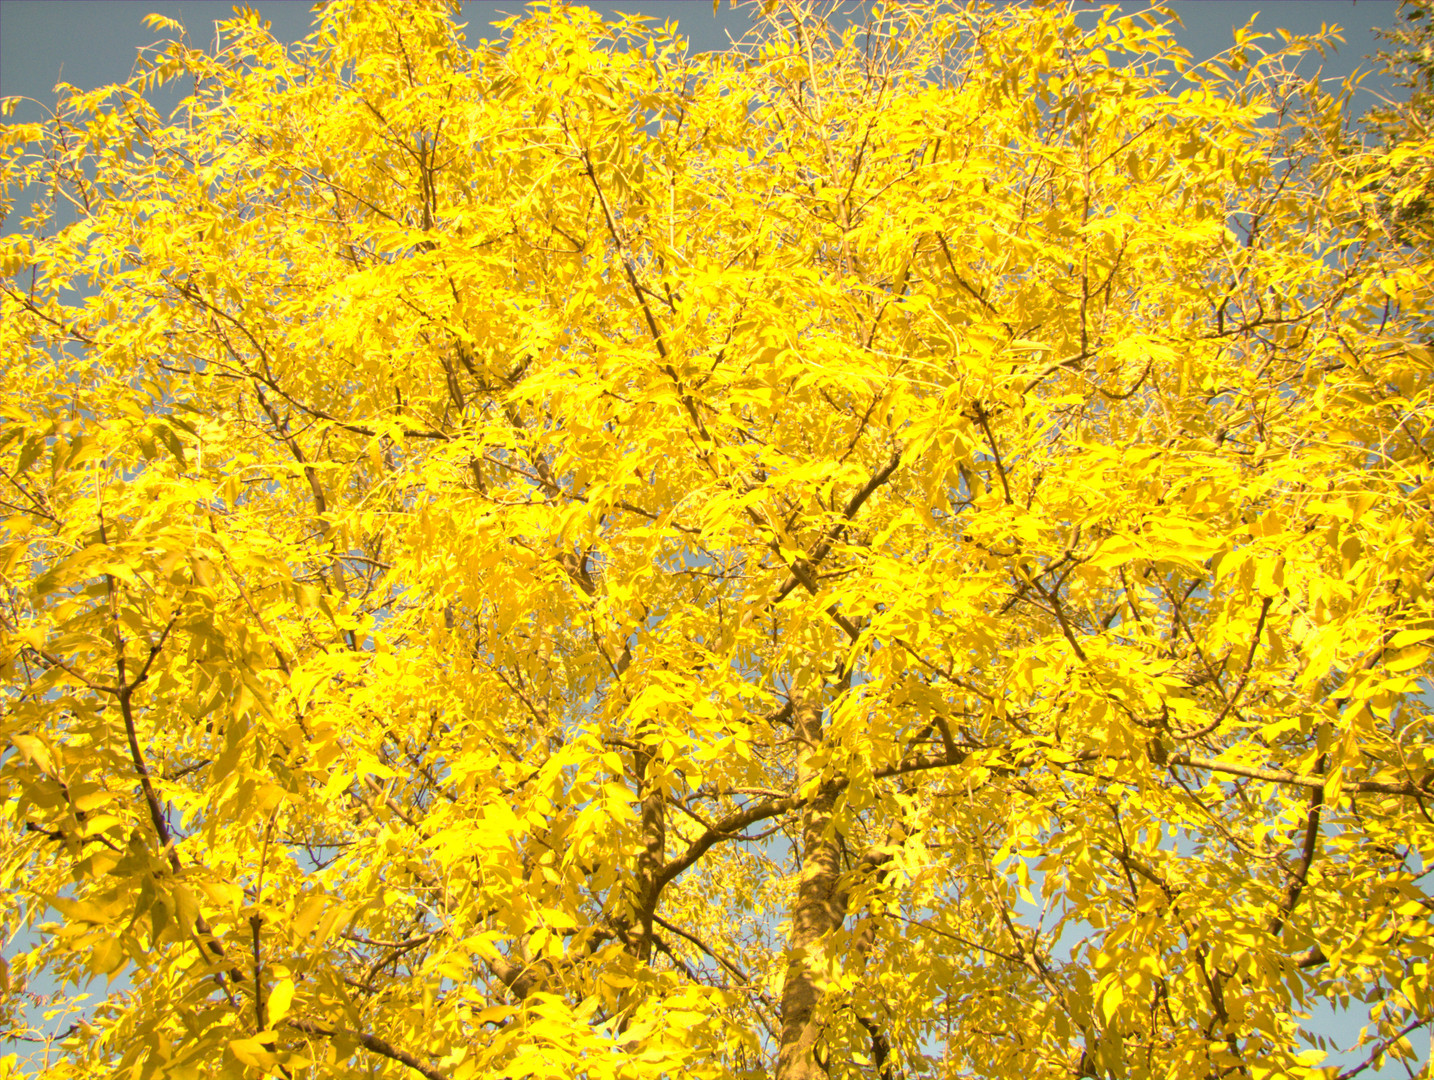 Golden October in the municipality county Hoya.